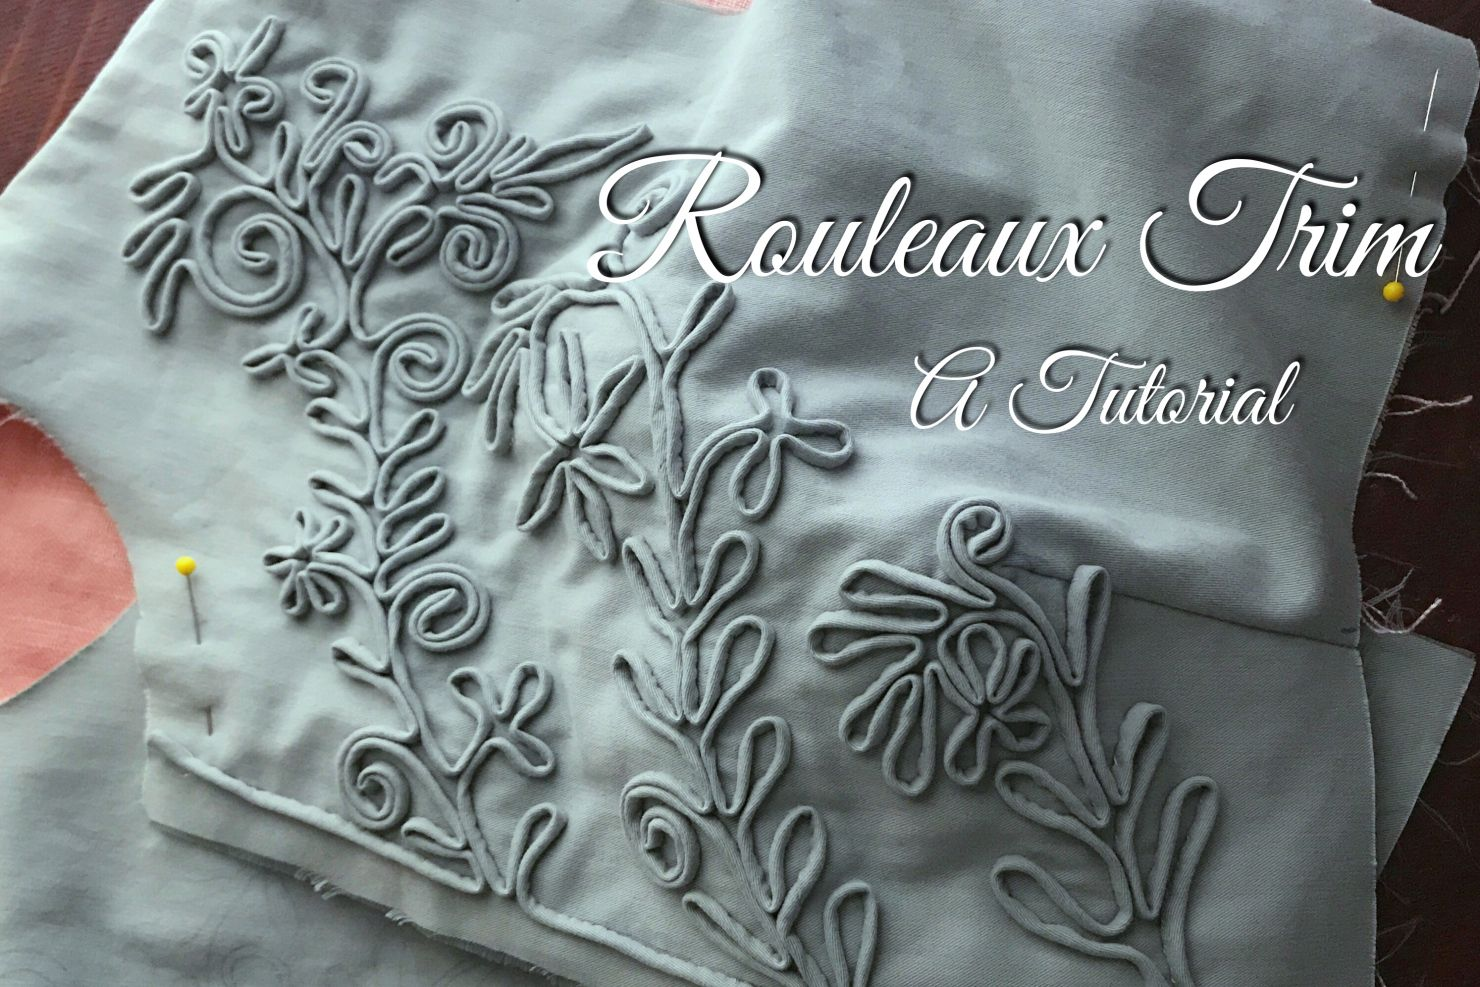 How To Make Rouleaux Trim With Images